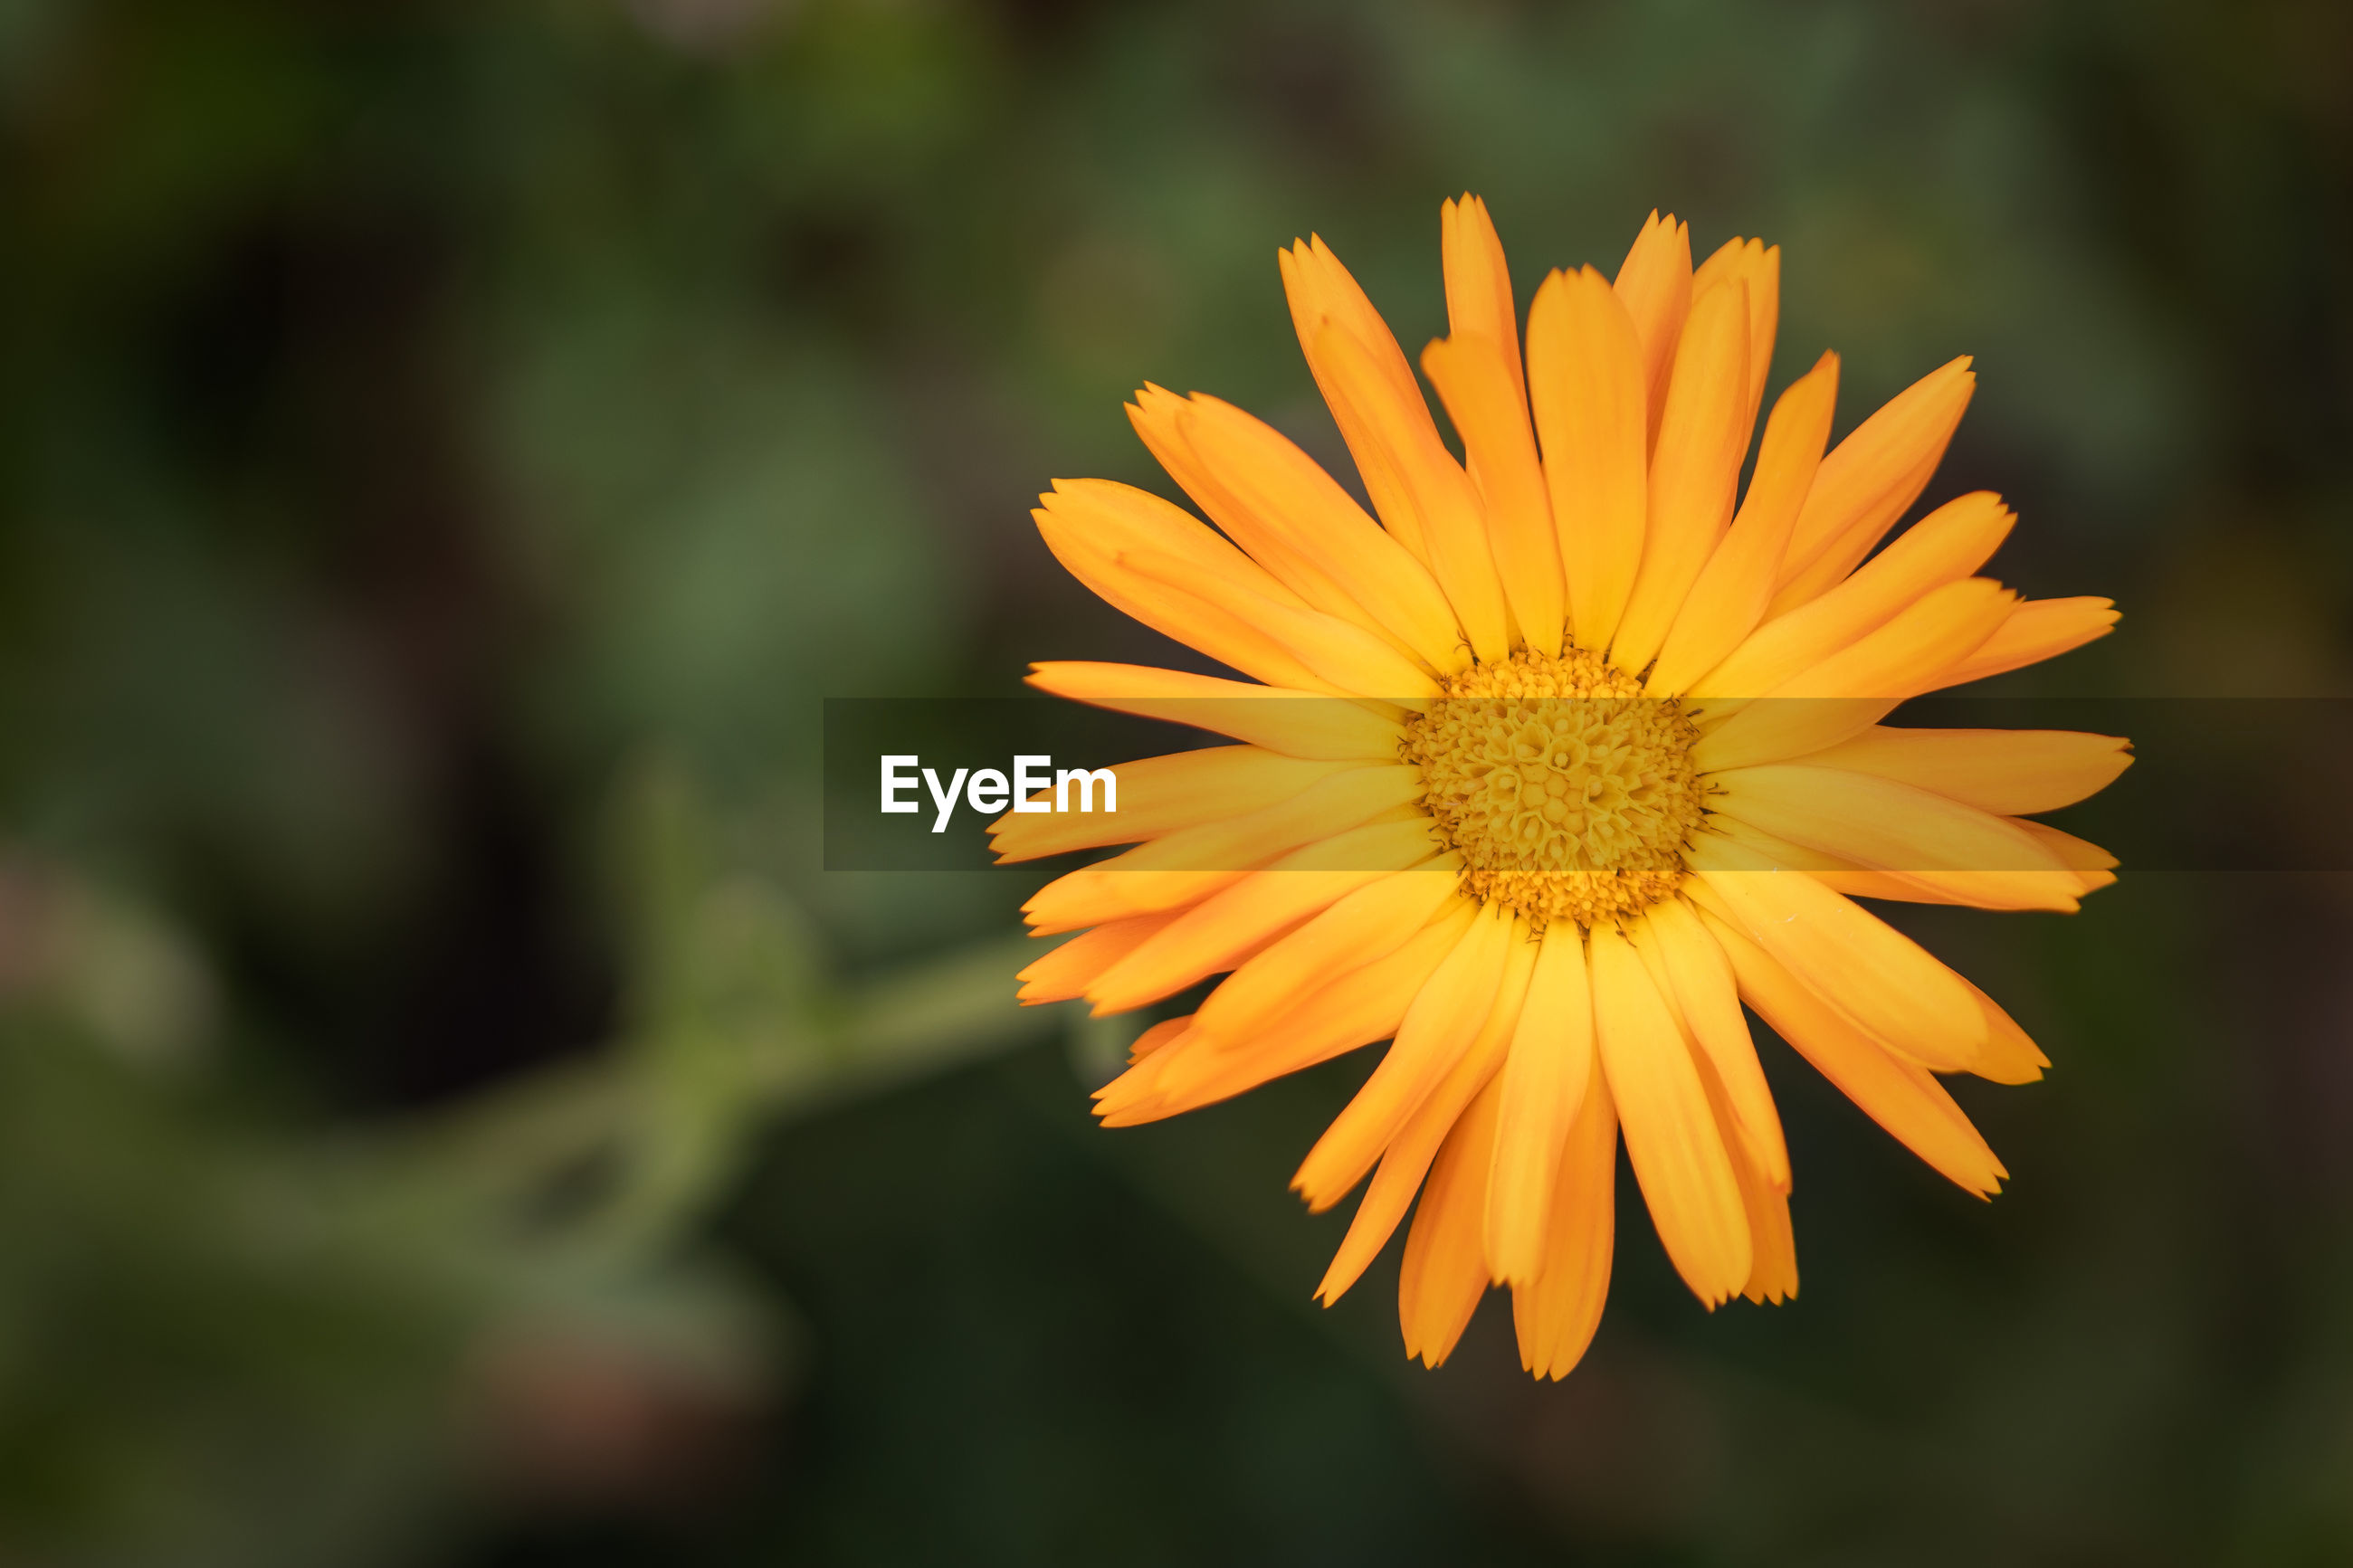 CLOSE-UP OF YELLOW FLOWER AGAINST ORANGE PLANTS